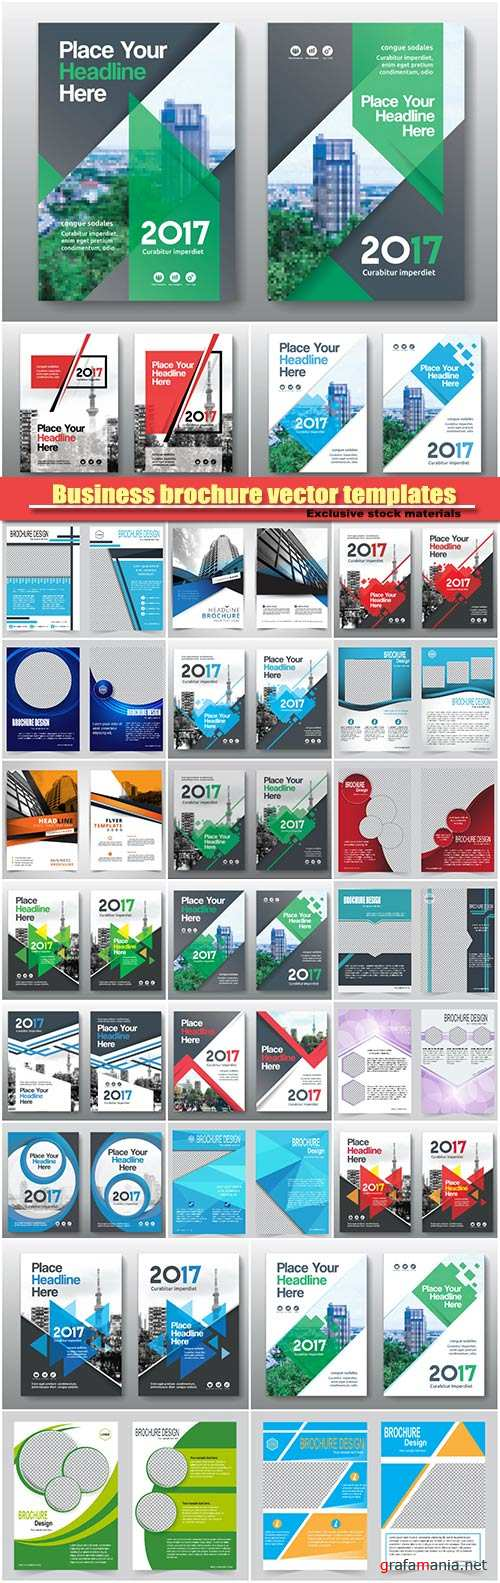 Business brochure vector, flyers templates